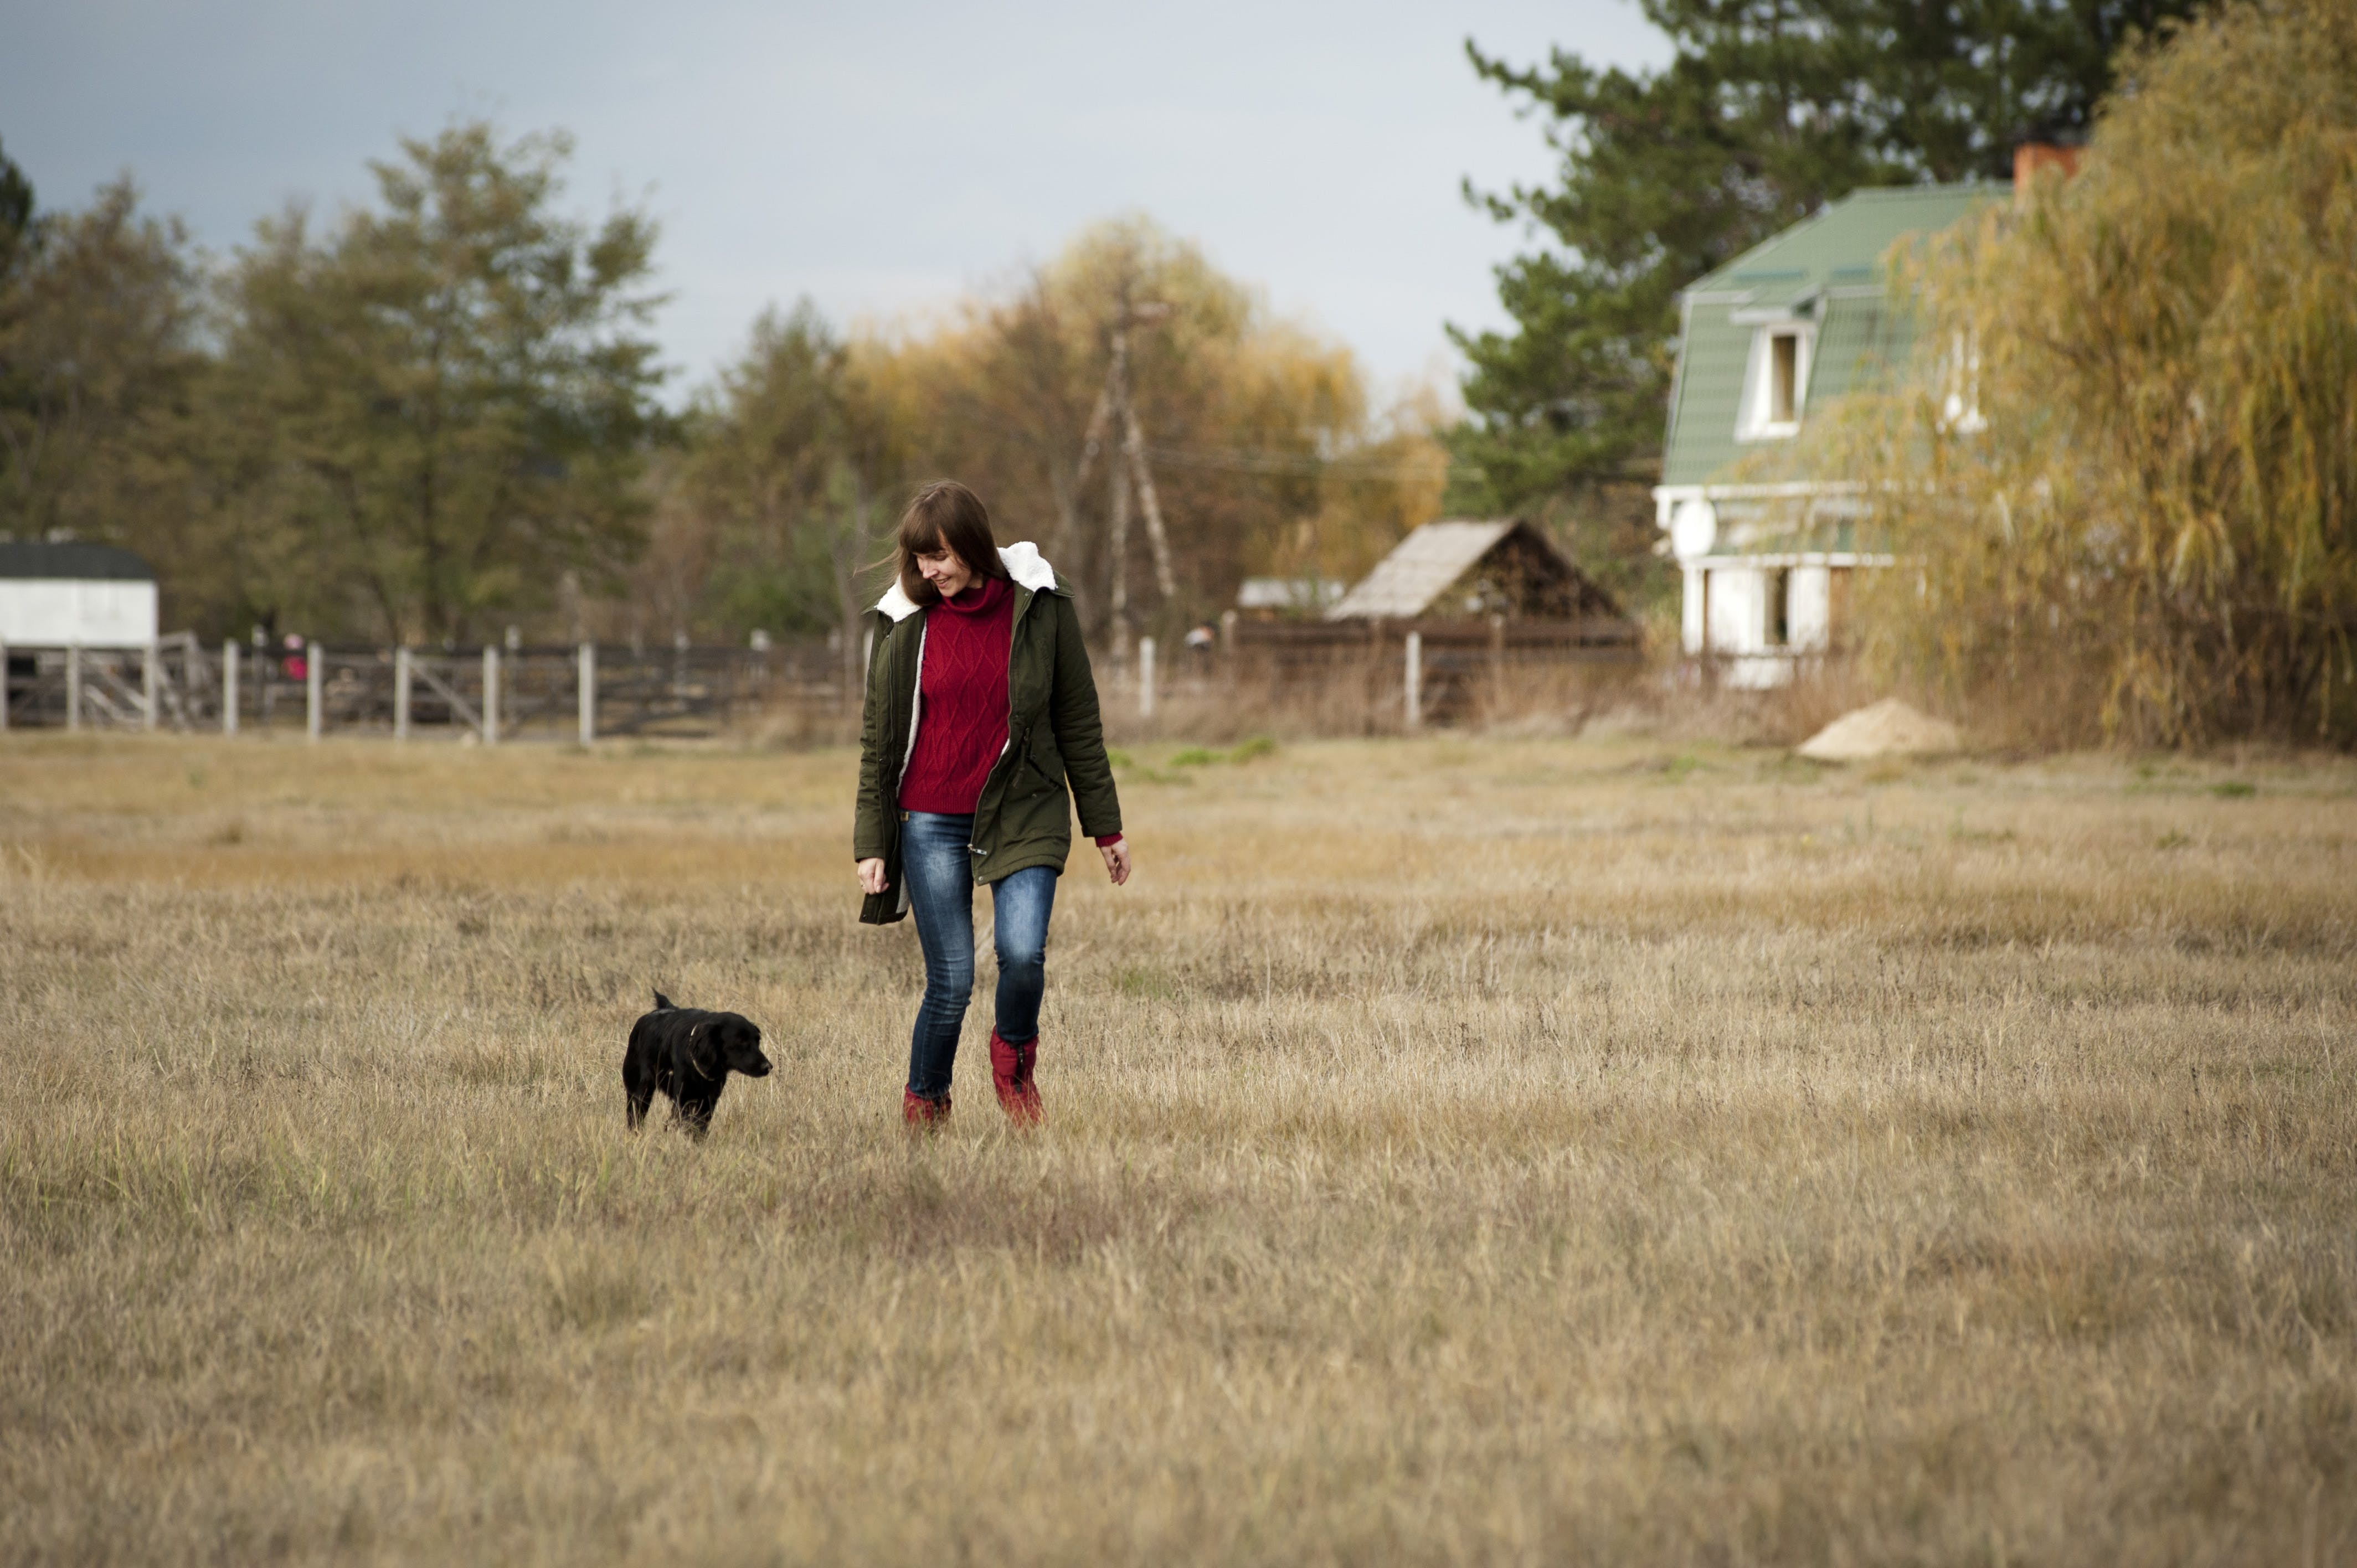 Woman Wearing Brown Zip-up Jacket and Blue Denim Jeans Walking Beside Short-coated Black Dog at Daytime